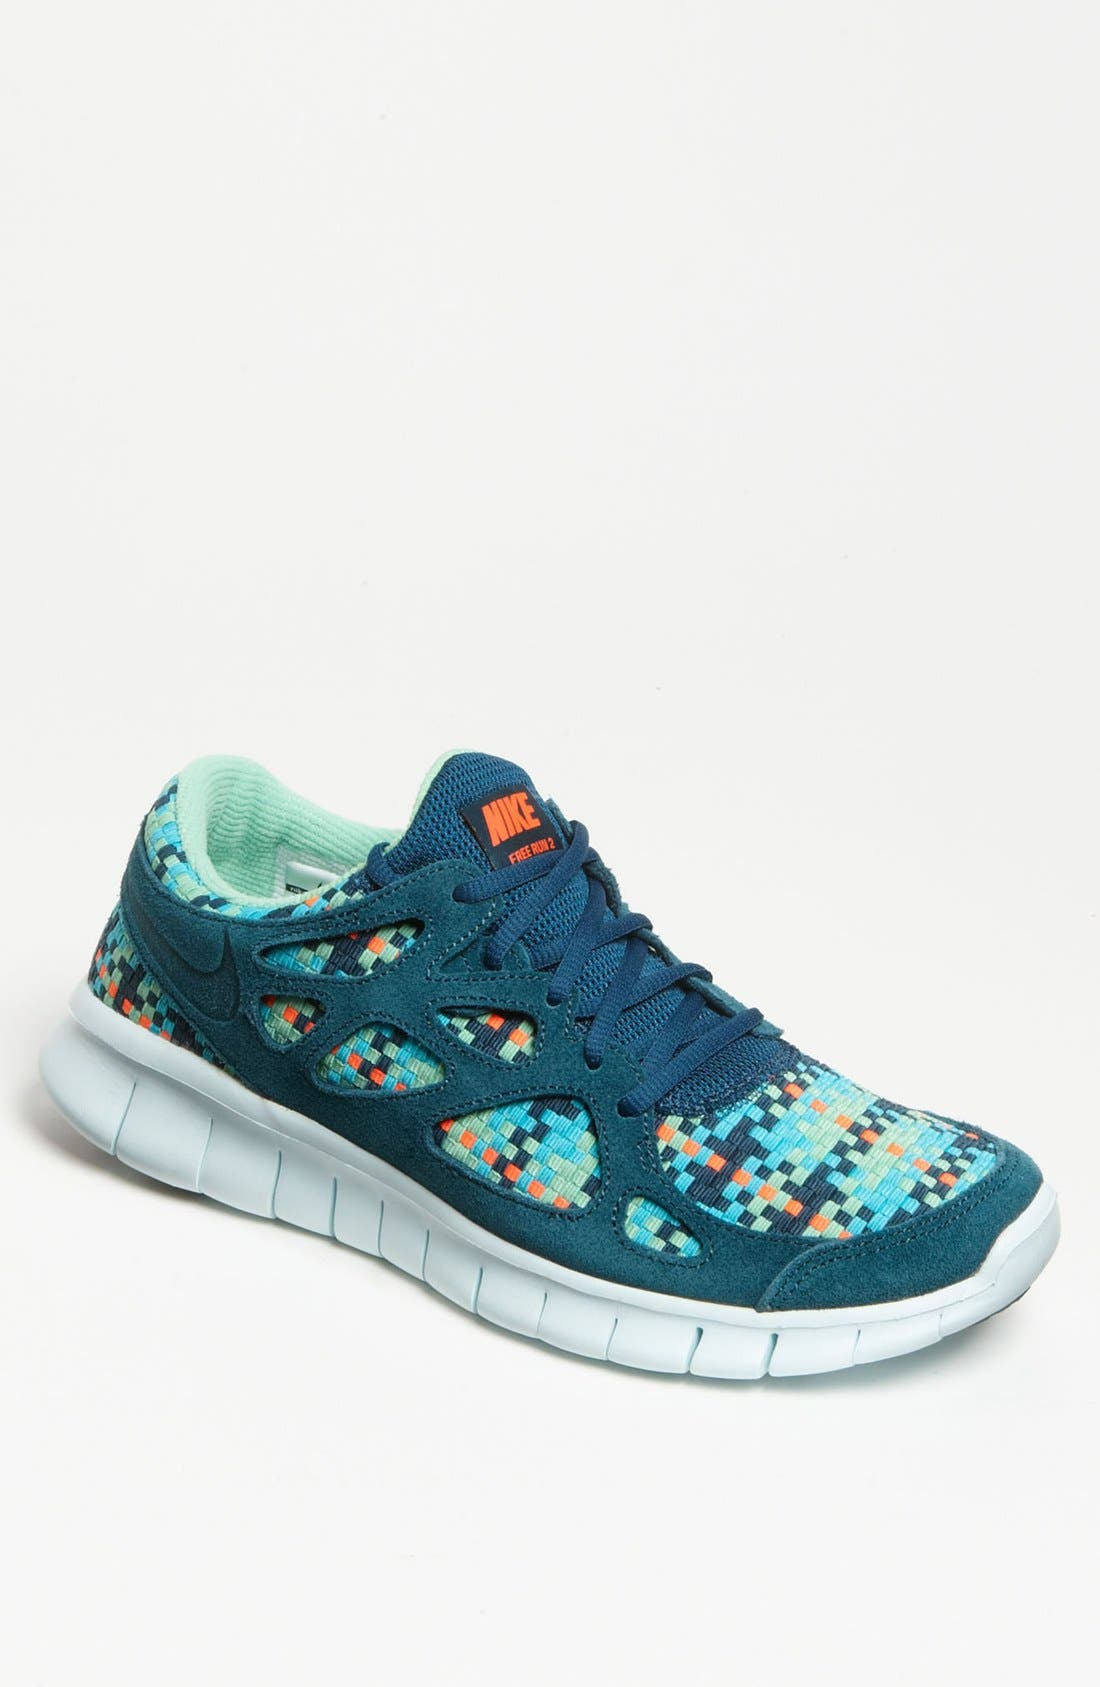 Alternate Image 1 Selected - Nike 'Free Run 2' Woven Sneaker (Men)